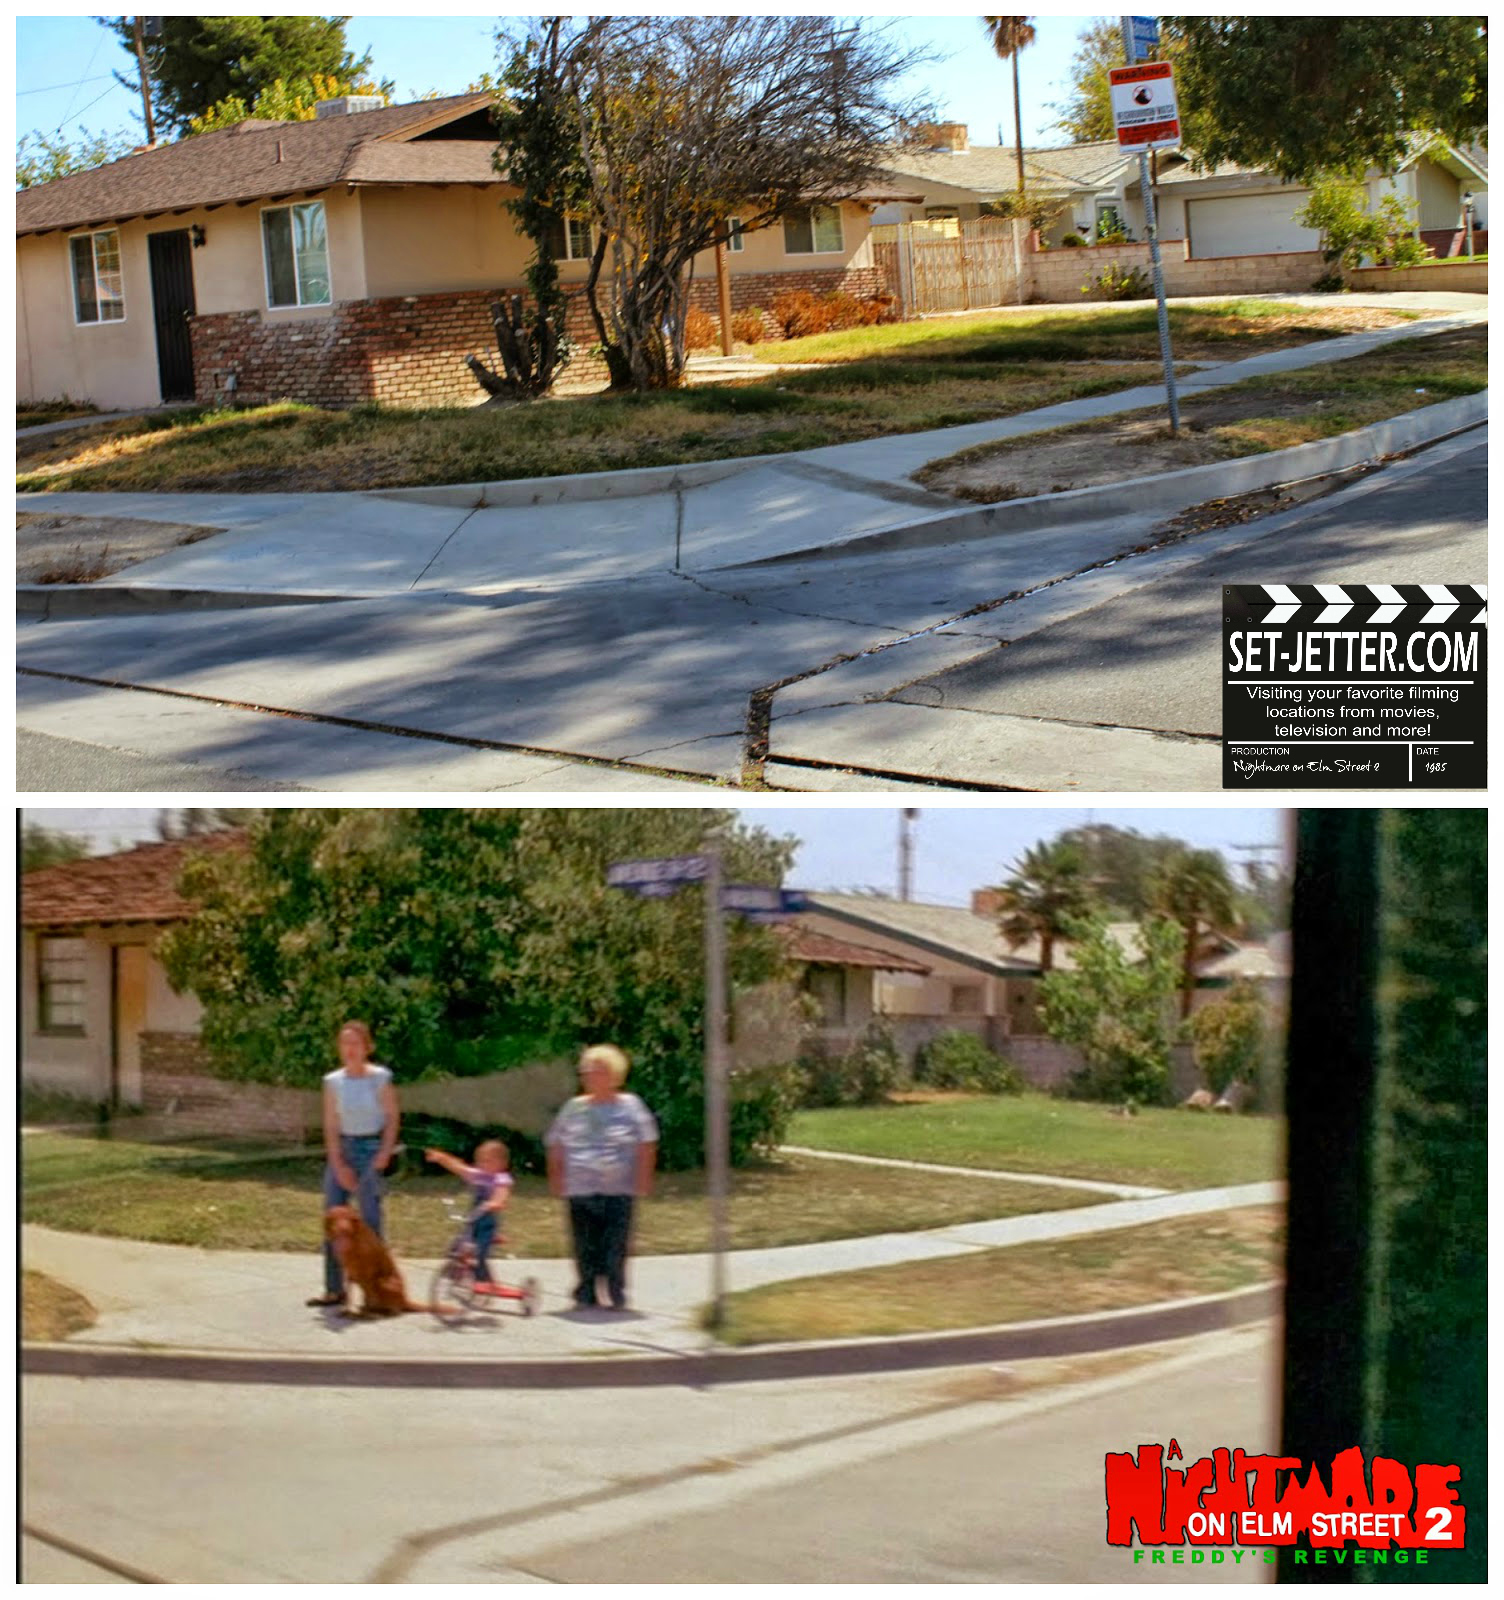 Nightmare on Elm Street Part 2 comparison 07.jpg